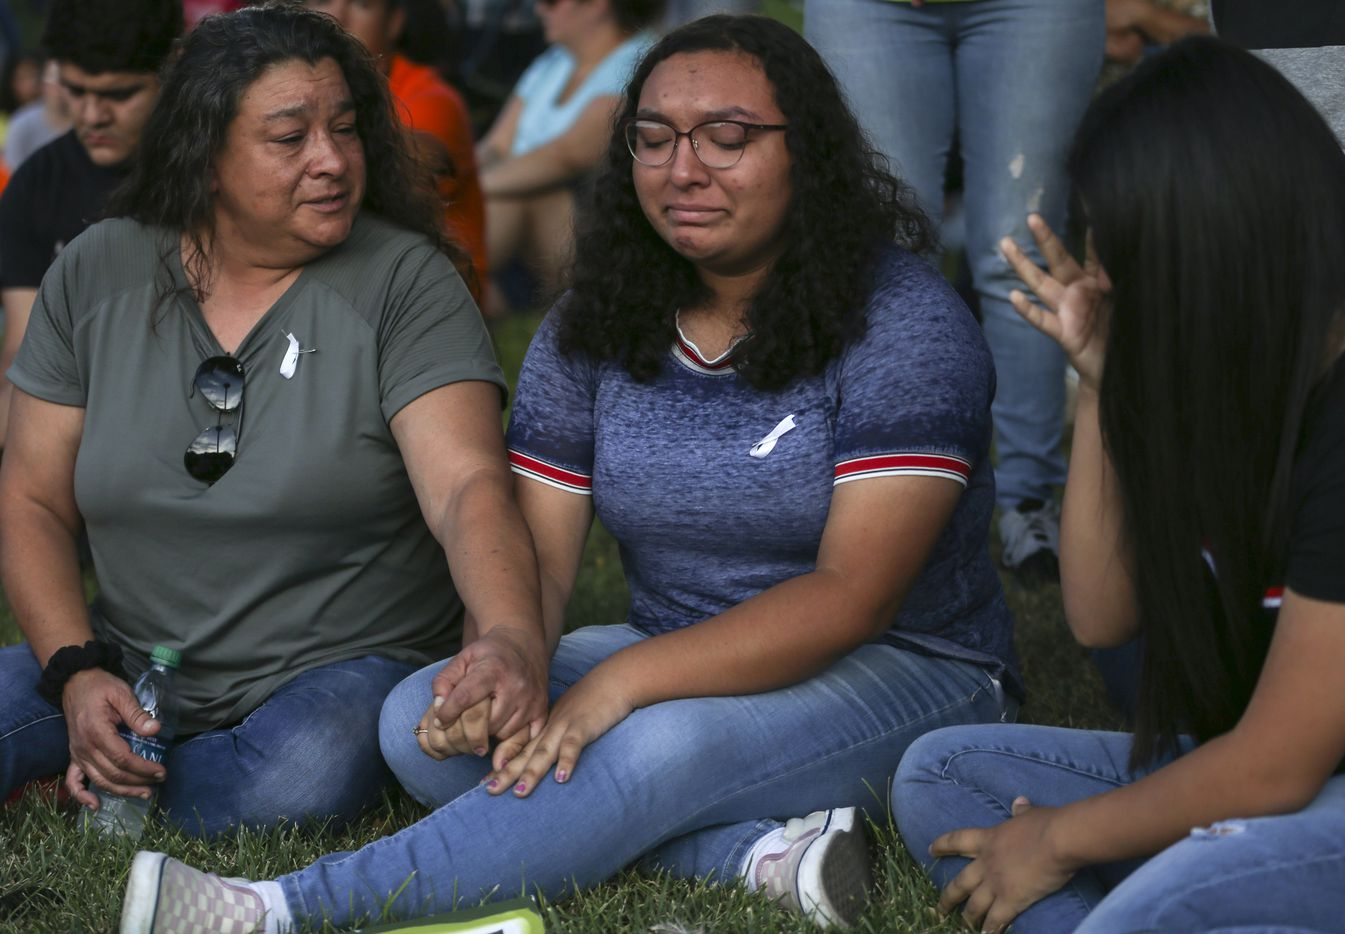 Christina Lopez (from left) comforts her daughter, Celia Lopez, 15, and Sajeili Carrasco, 15, who were both friends with Leilah Hernandez, a 15-year-old Odessa High sophomore killed in the attack, as community members gather for a prayer vigil at the University of Texas Permian Basin on Sunday, Sept. 1, 2019.